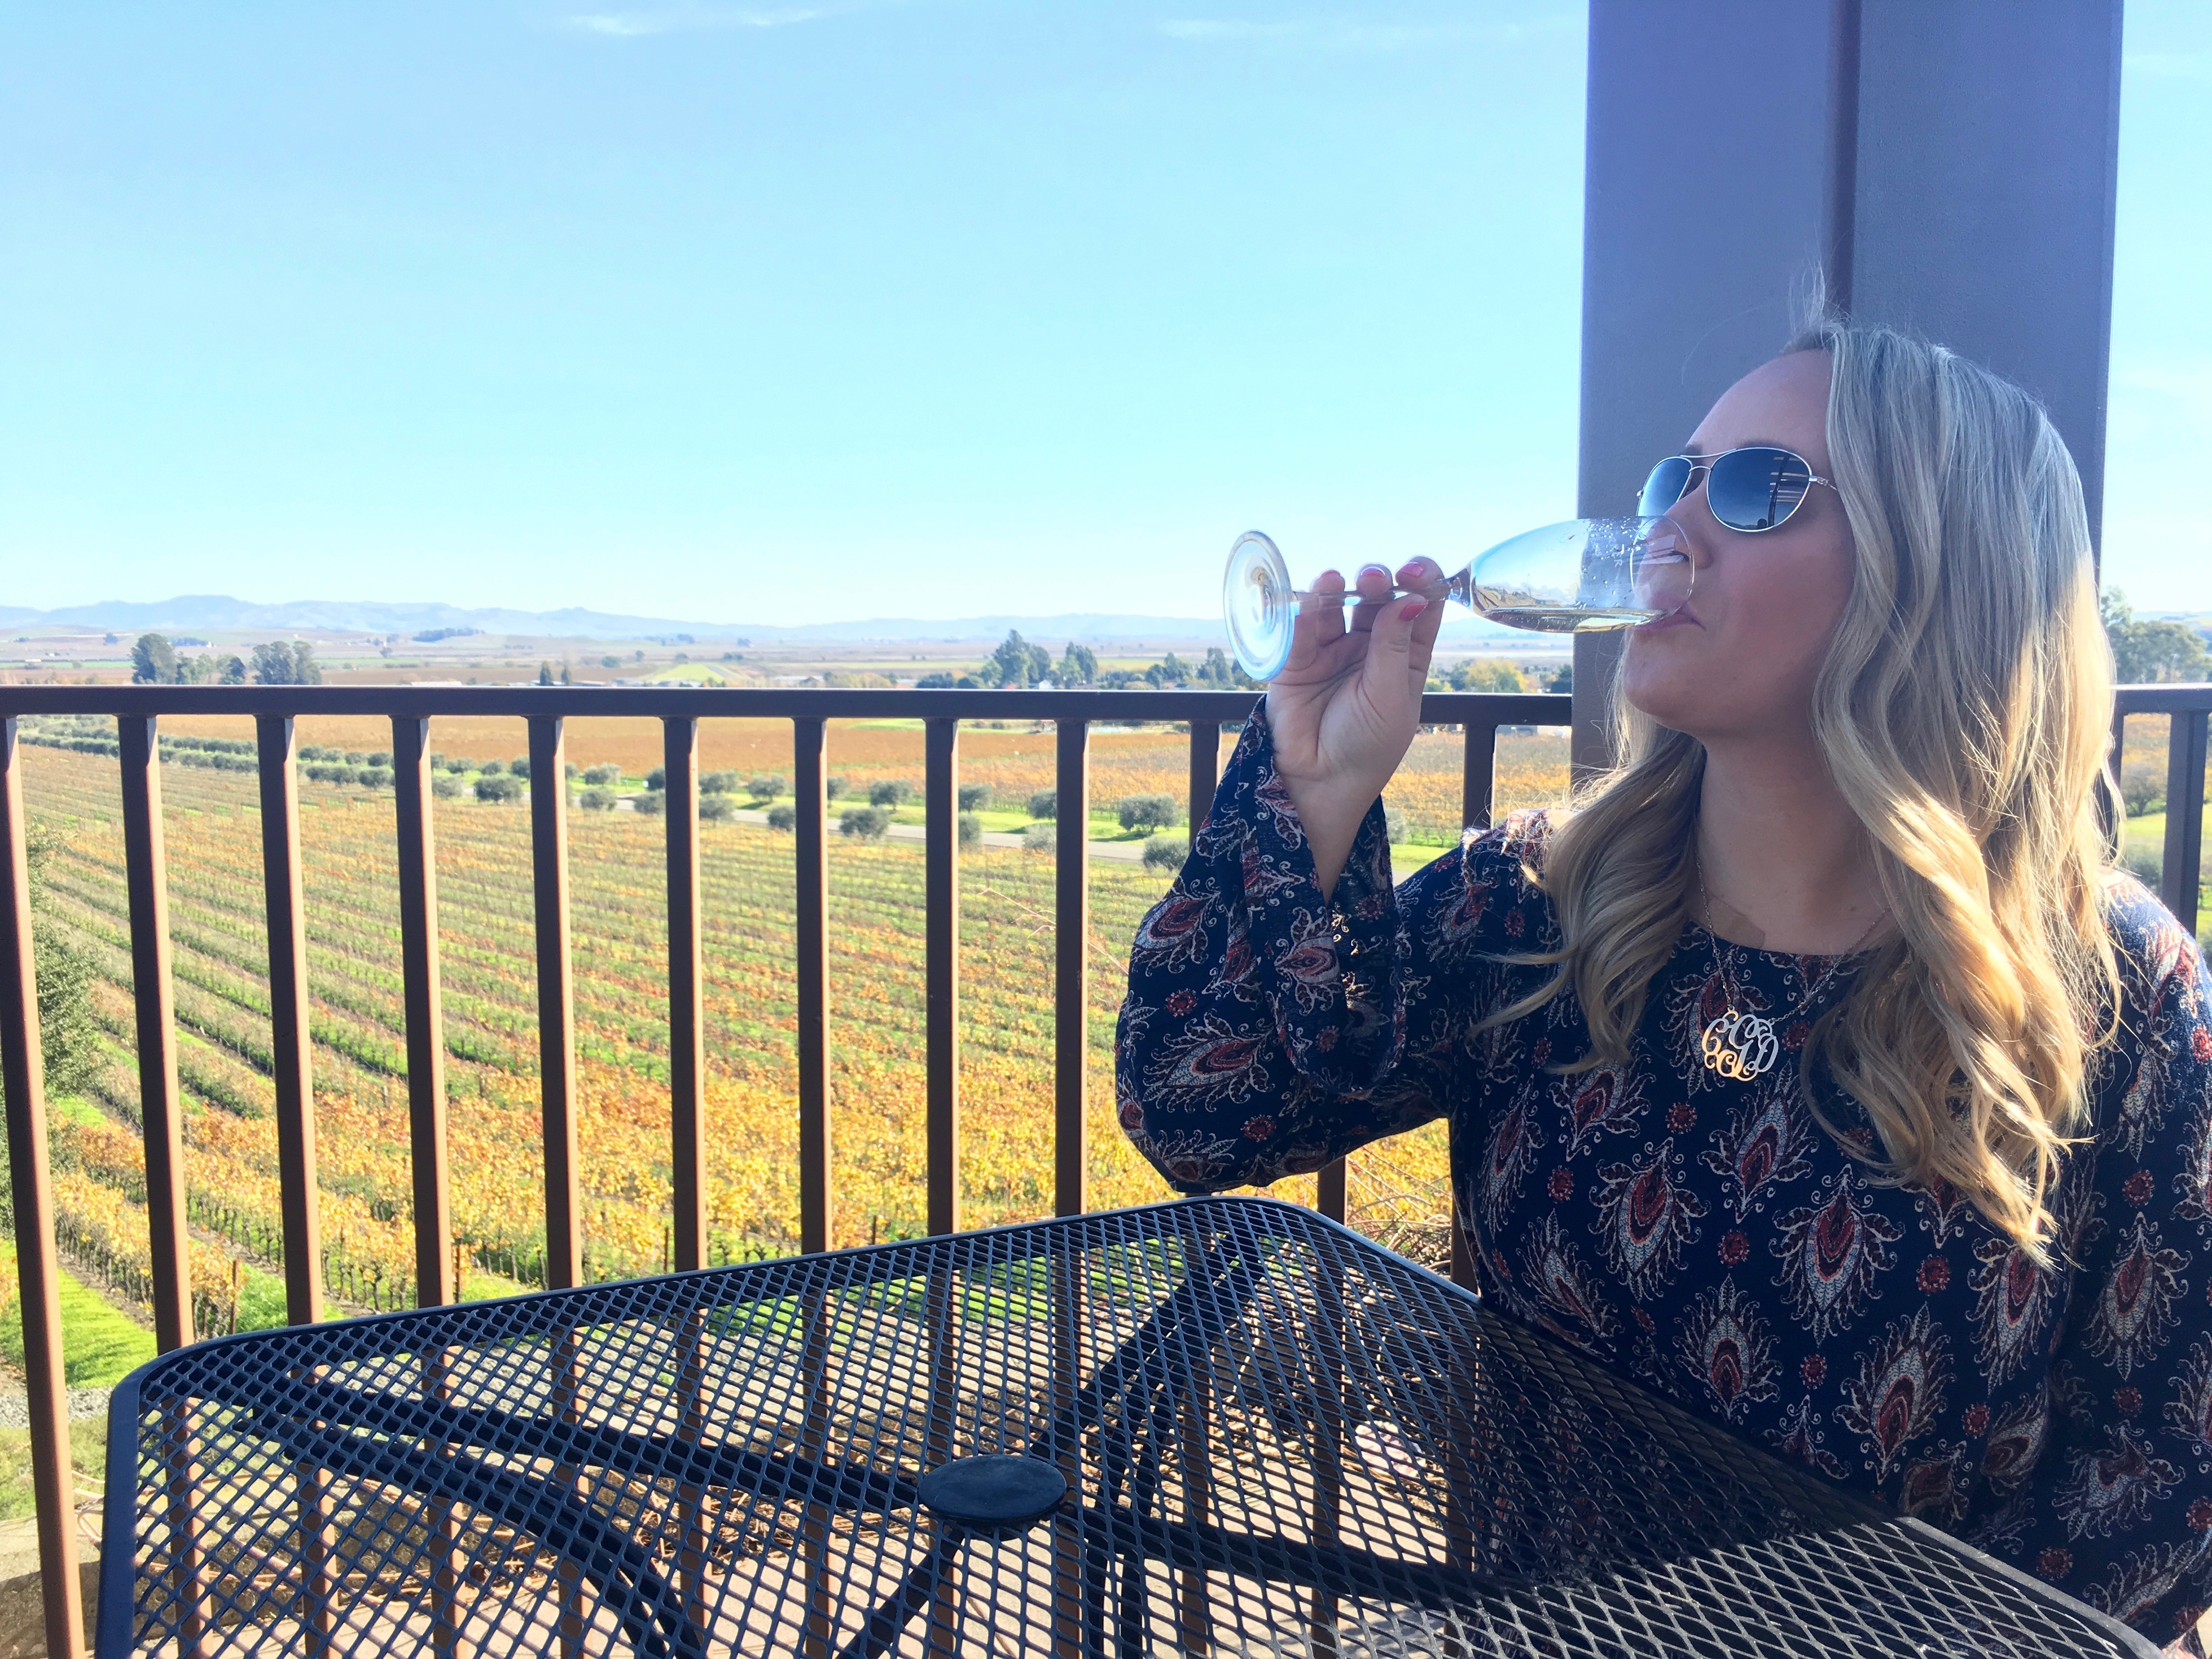 Sonoma Weekend Plan - Sonoma Vacation - Gloria Ferrera #Sonoma #SonomaVacation